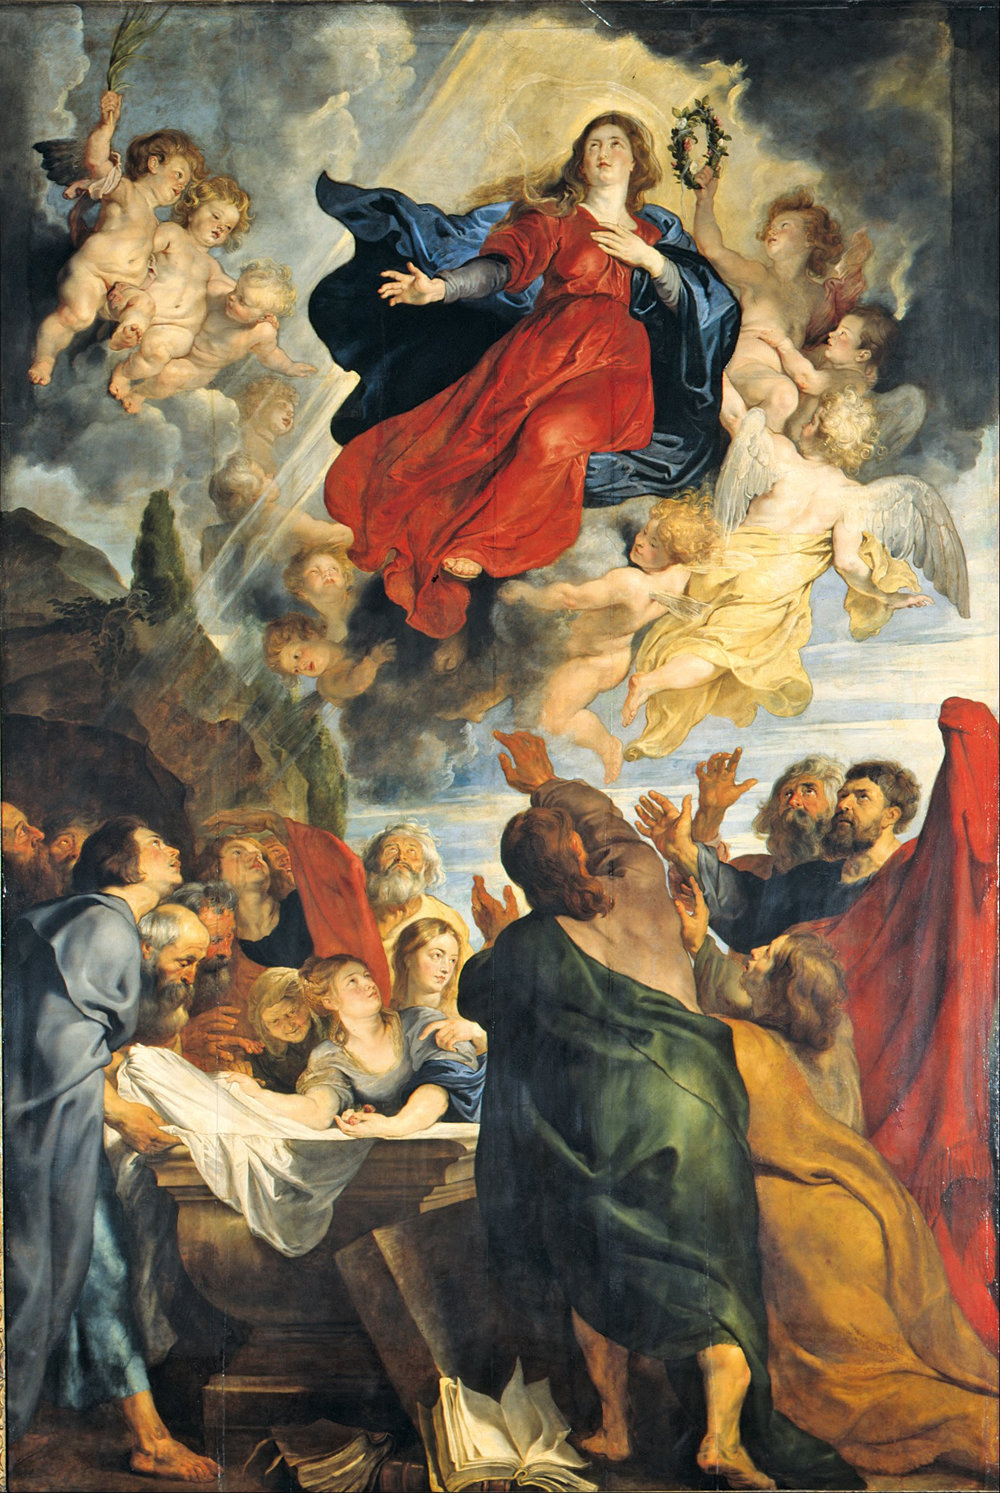 Peter_Paul_Rubens_-_The_Assumption_of_the_Virgin_Mary_-_Google_Art_Project.jpg